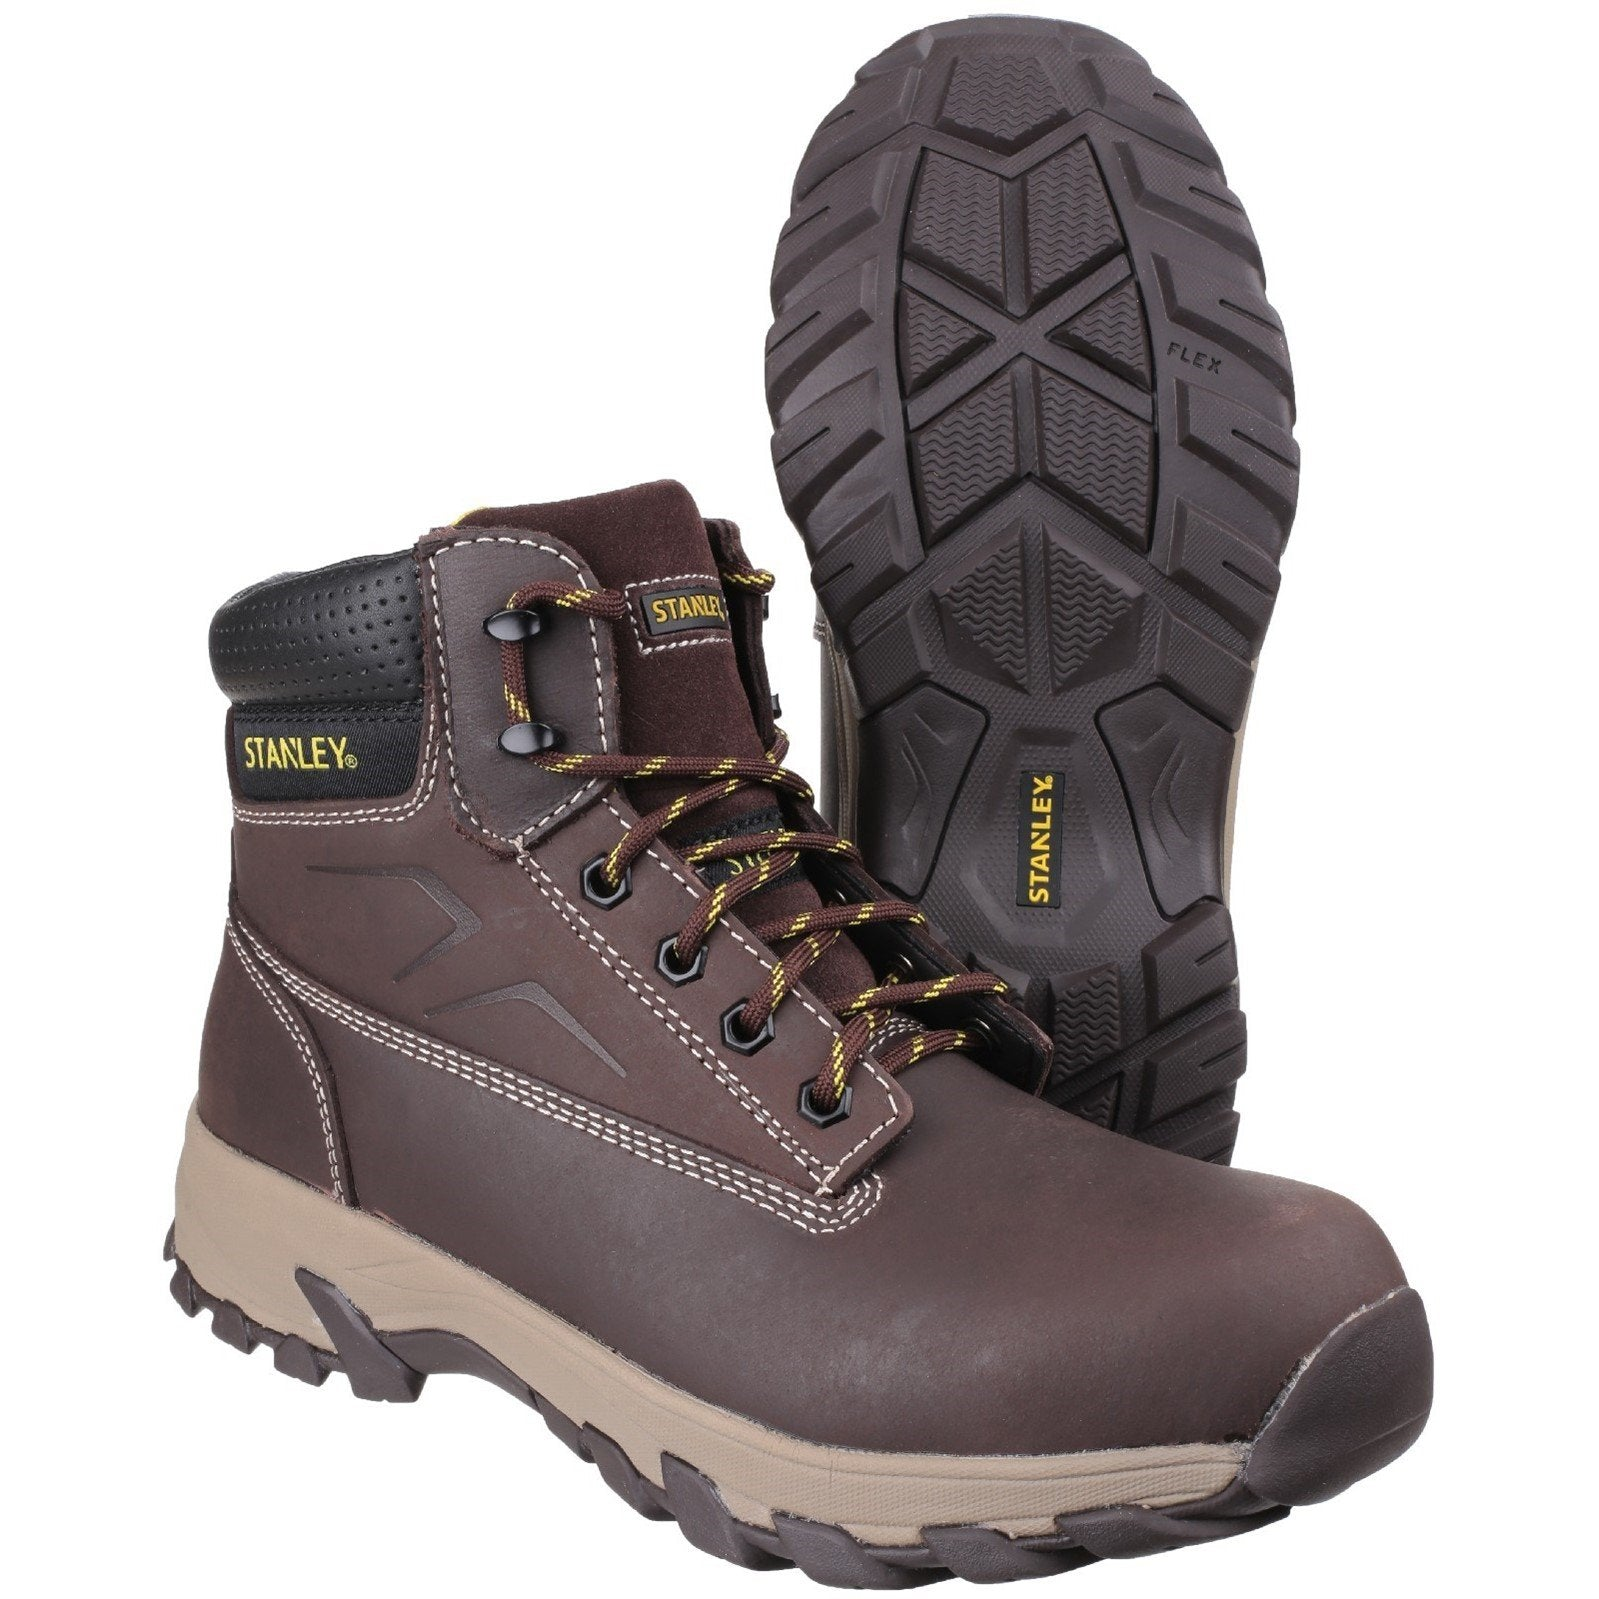 Stanley Stanley Tradesman Safety Boots